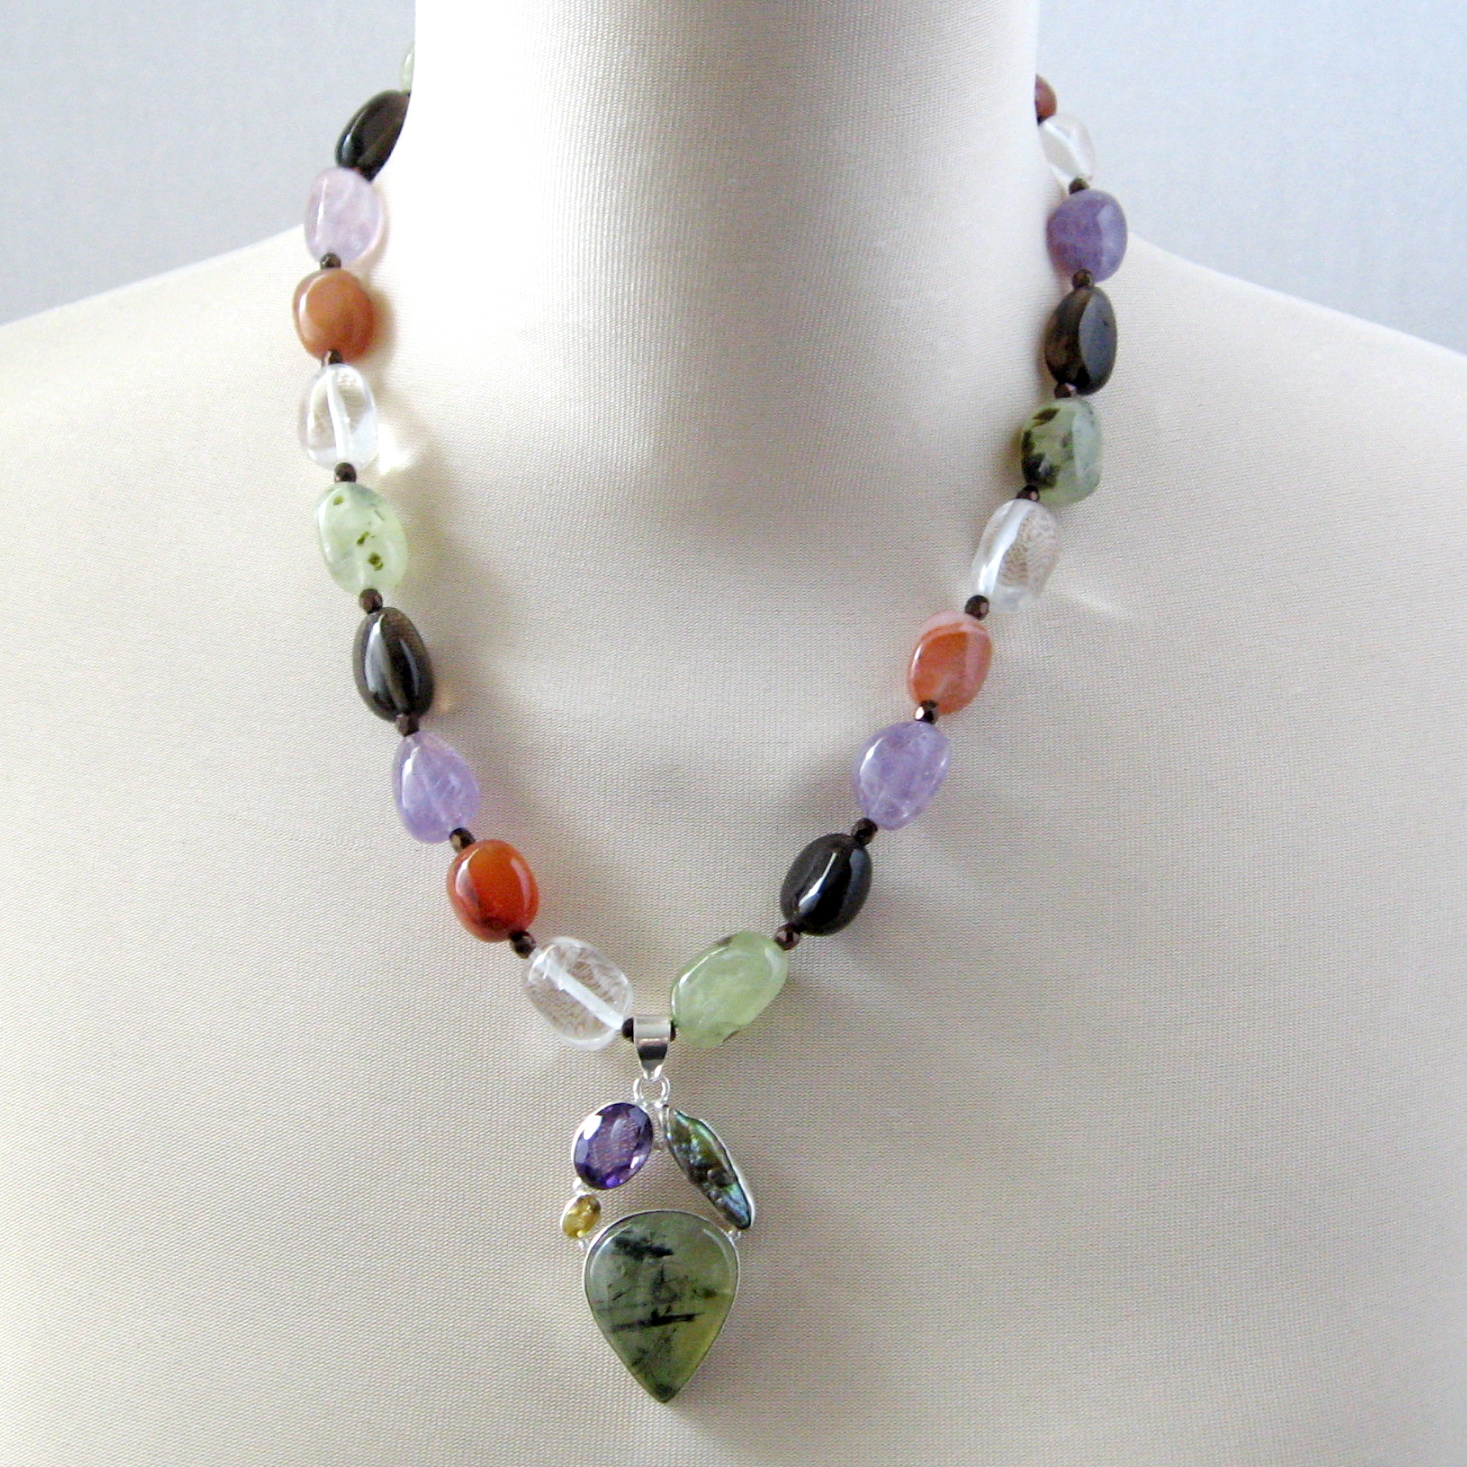 GalleriaLinda Handmade Jewelry Designs Featured In Blog